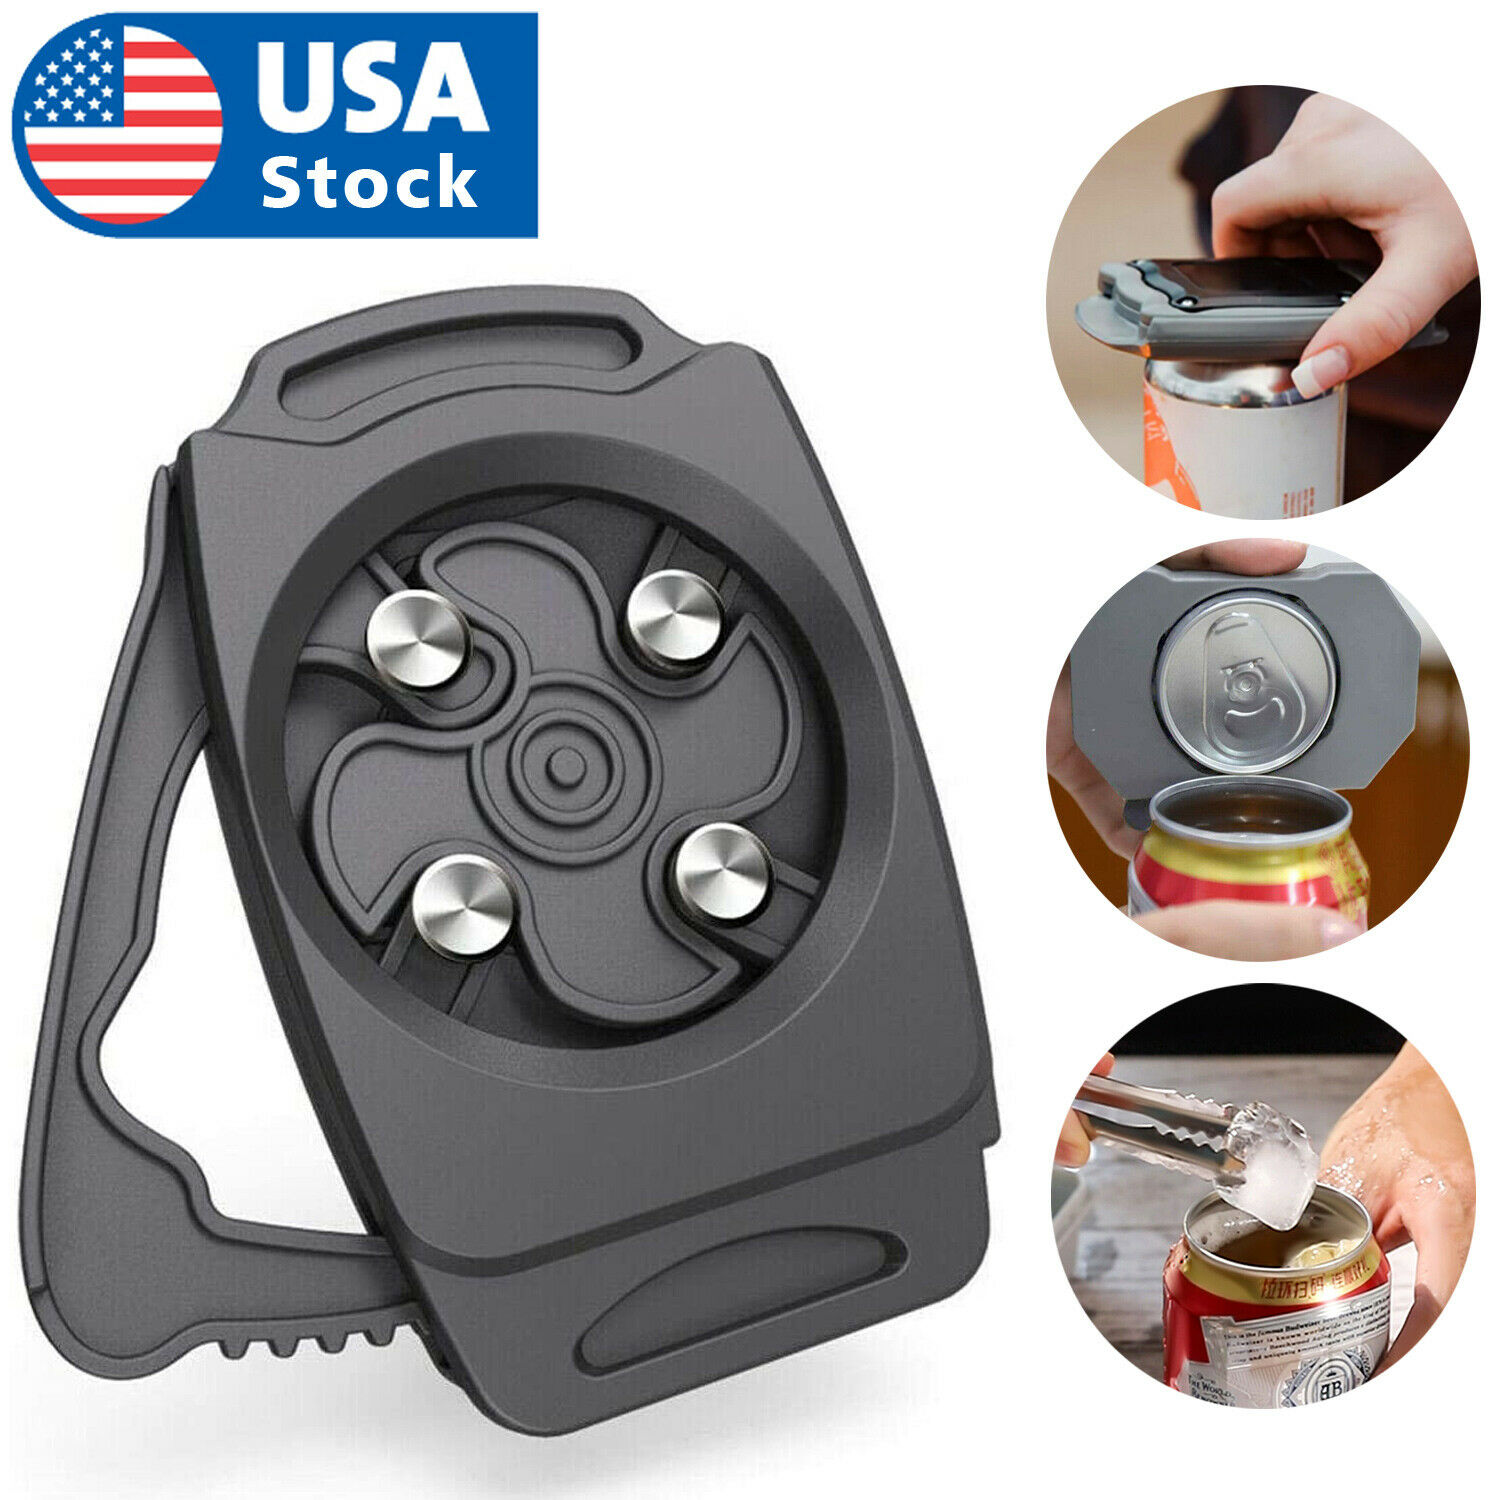 USA Topless Can Opener Bar Tool Safety Manual Opener Household Kitchen Tool Can Openers (Manual)